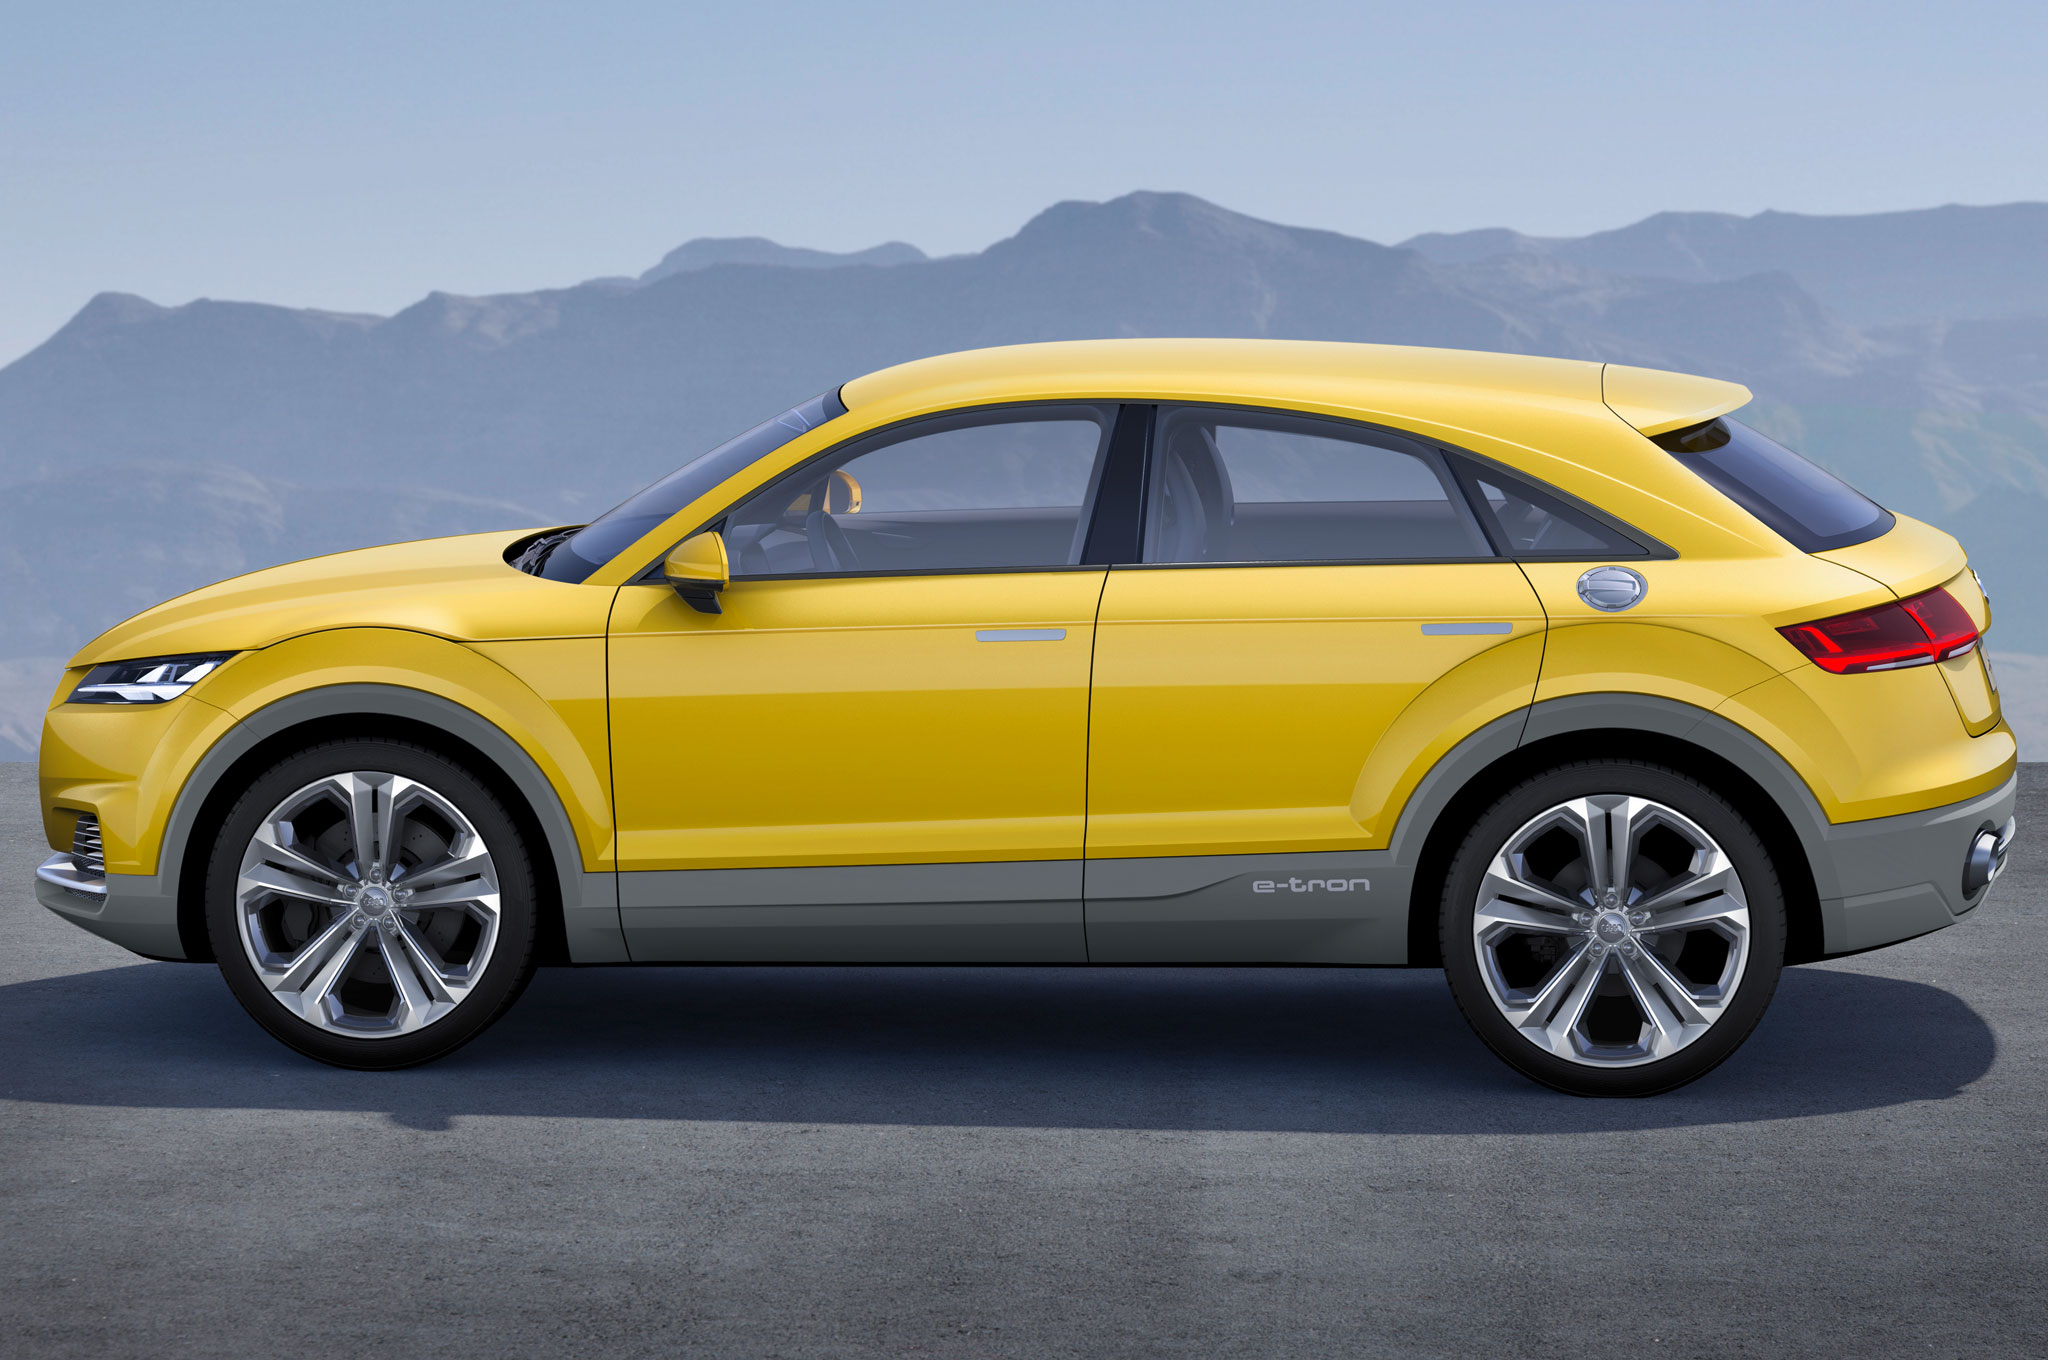 The Audi TT Offroad concept from 2014.